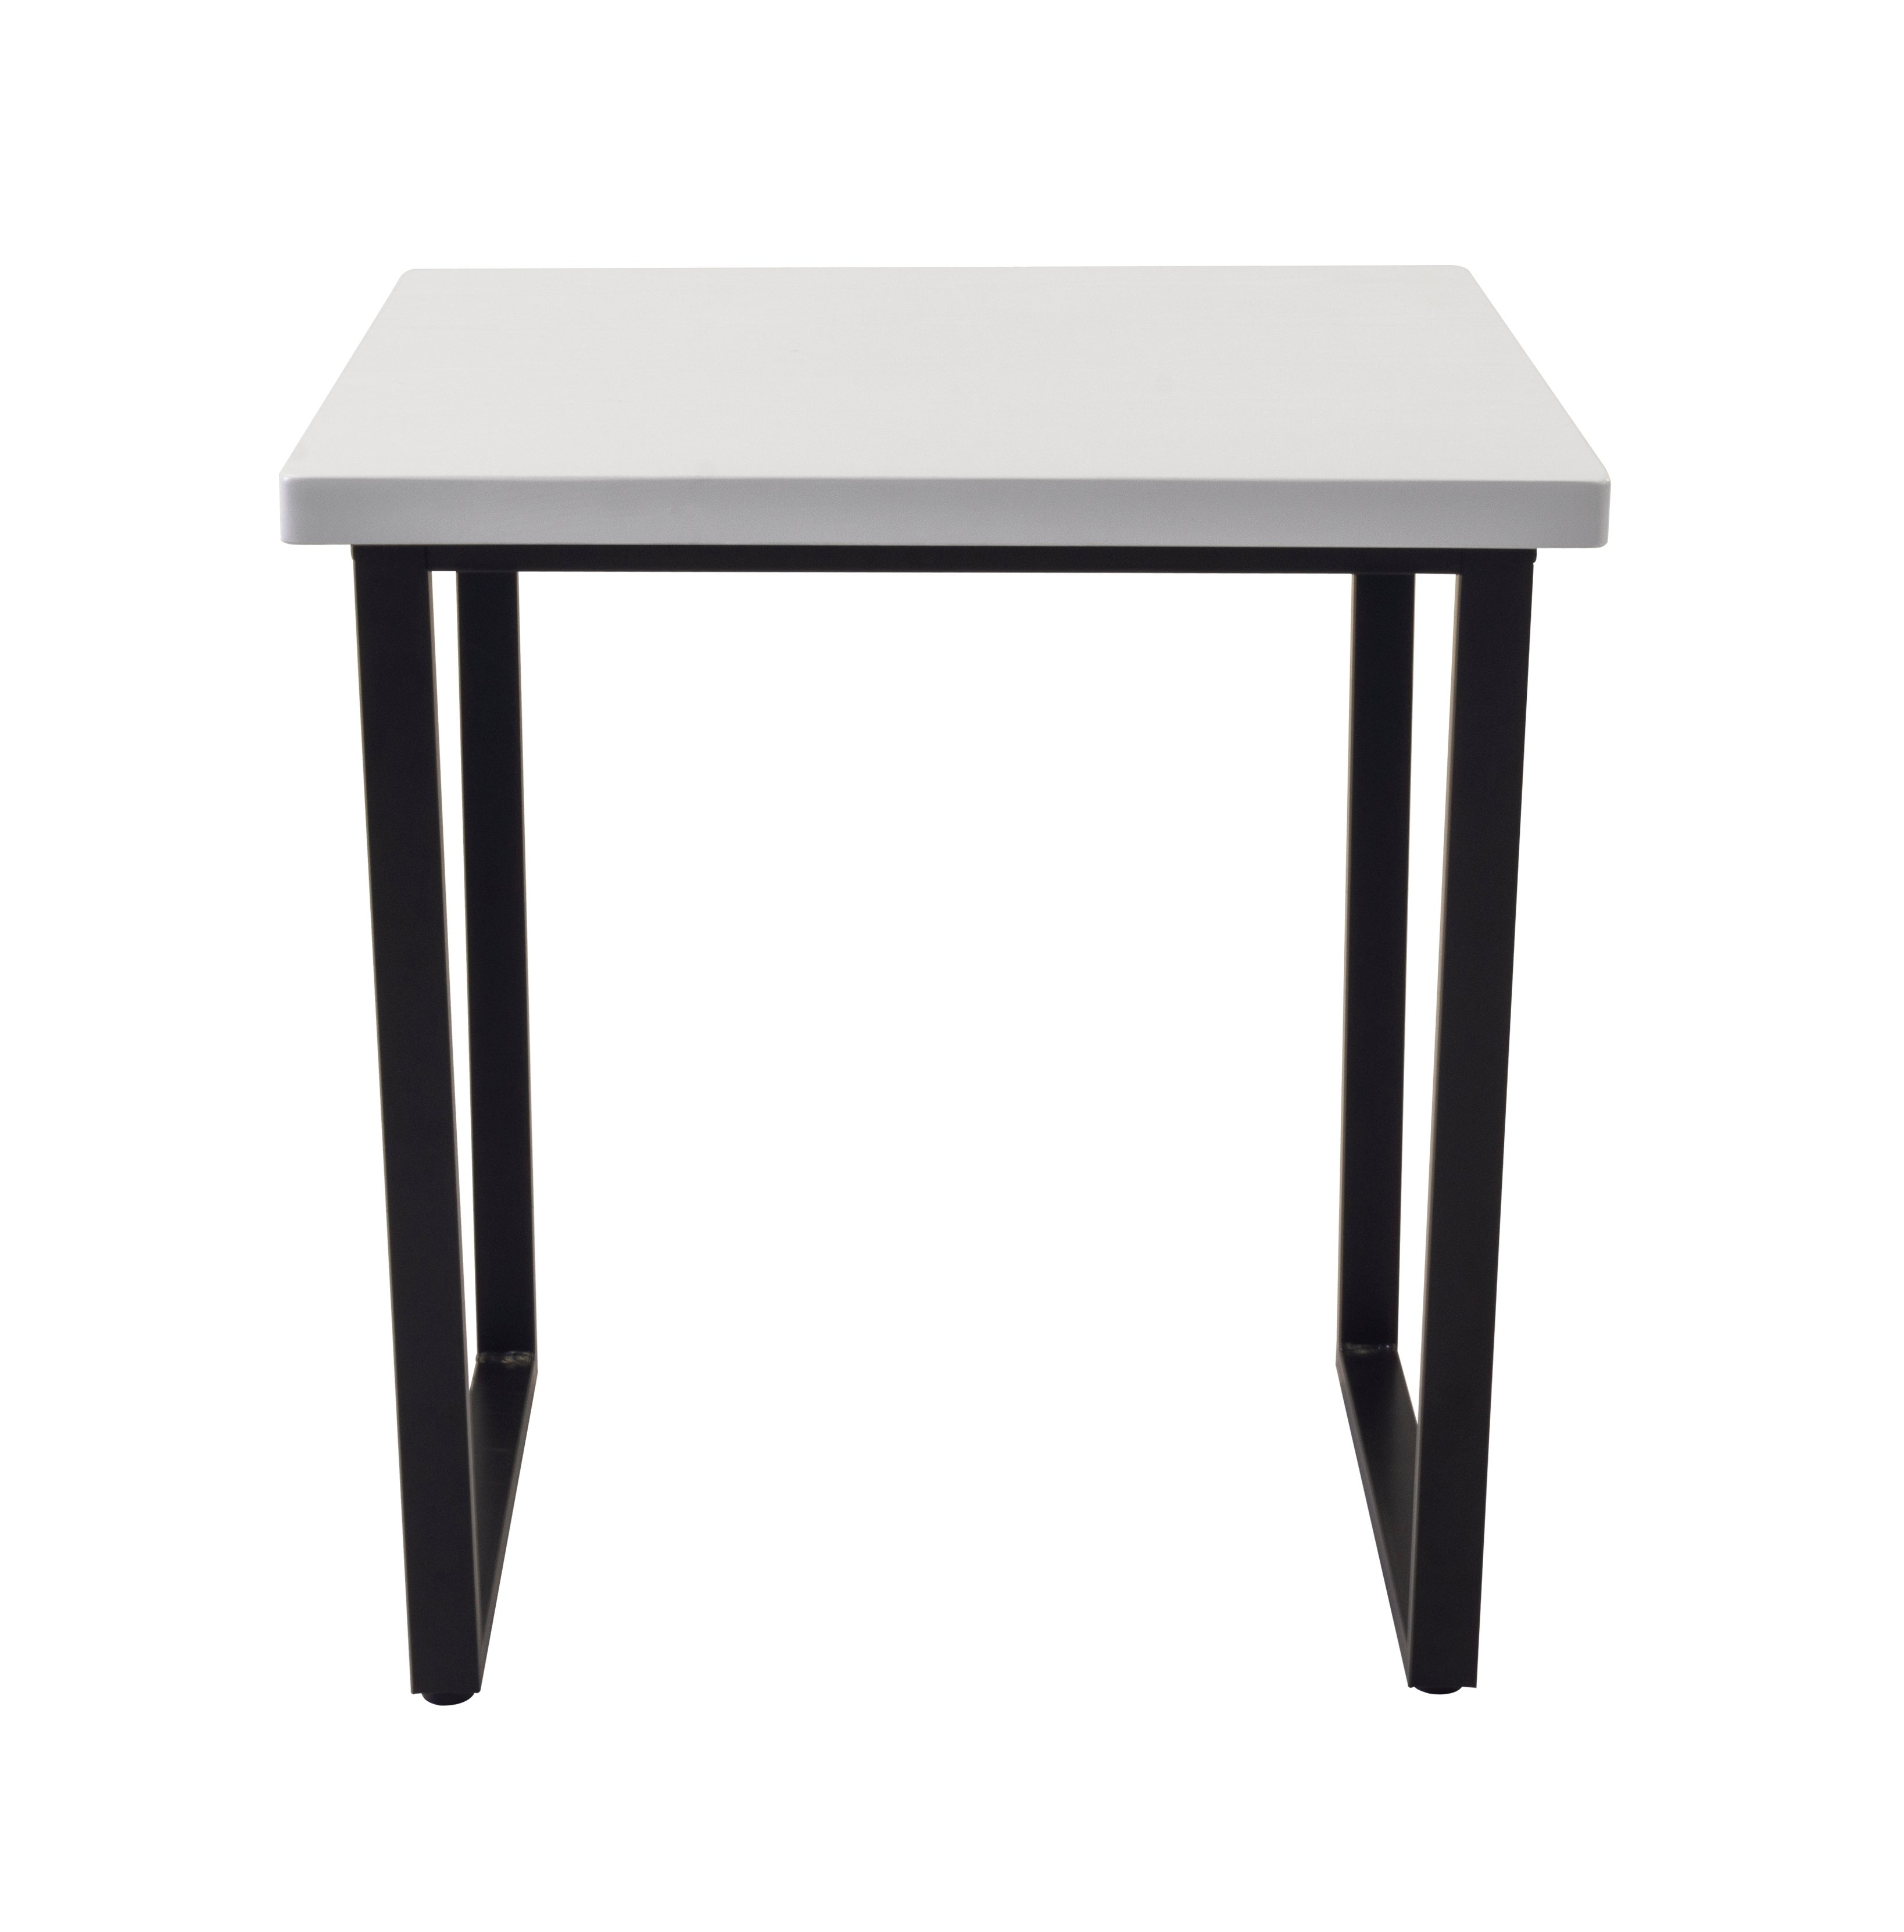 Vixen Compact Square Dining Table Black and white